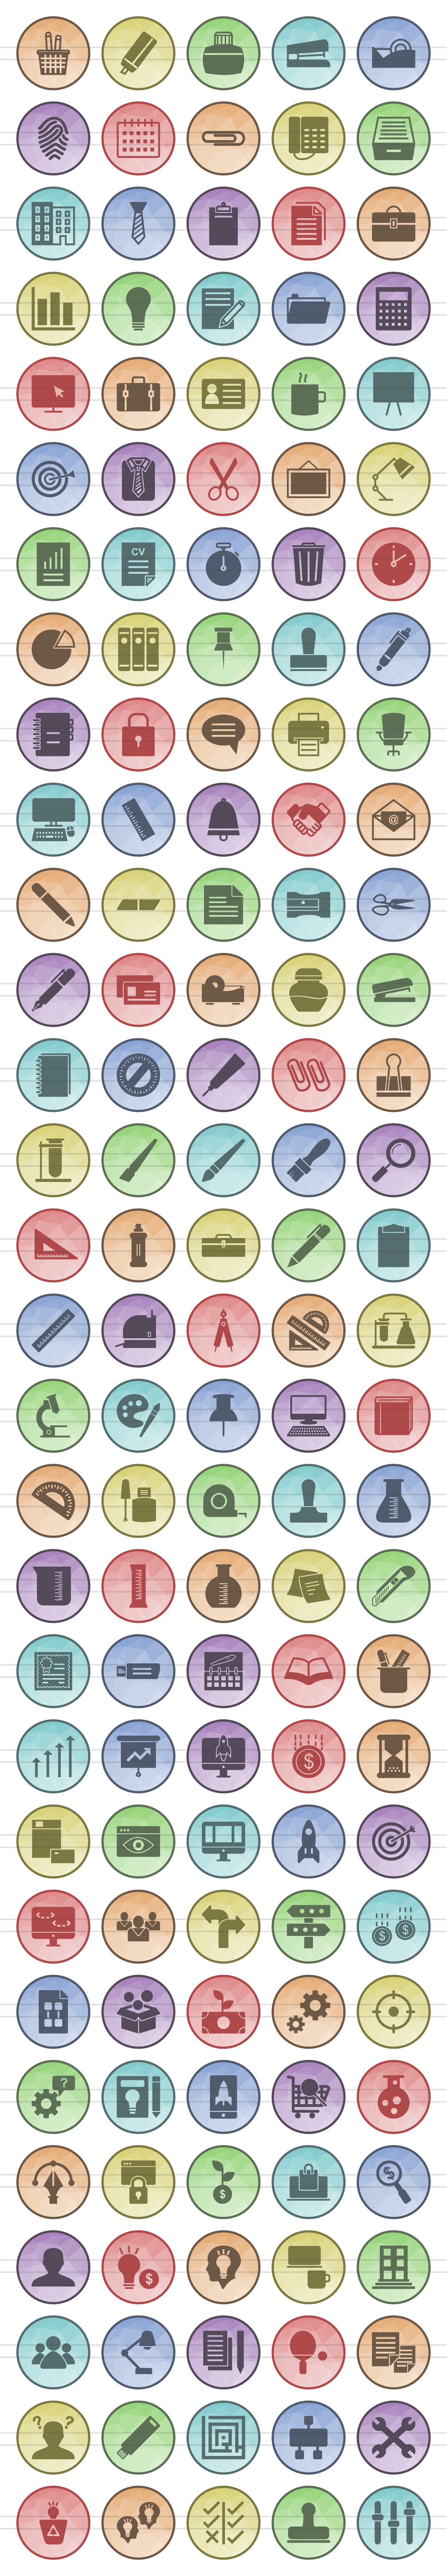 150 Office & Stationery Filled Low Poly Icons example image 2